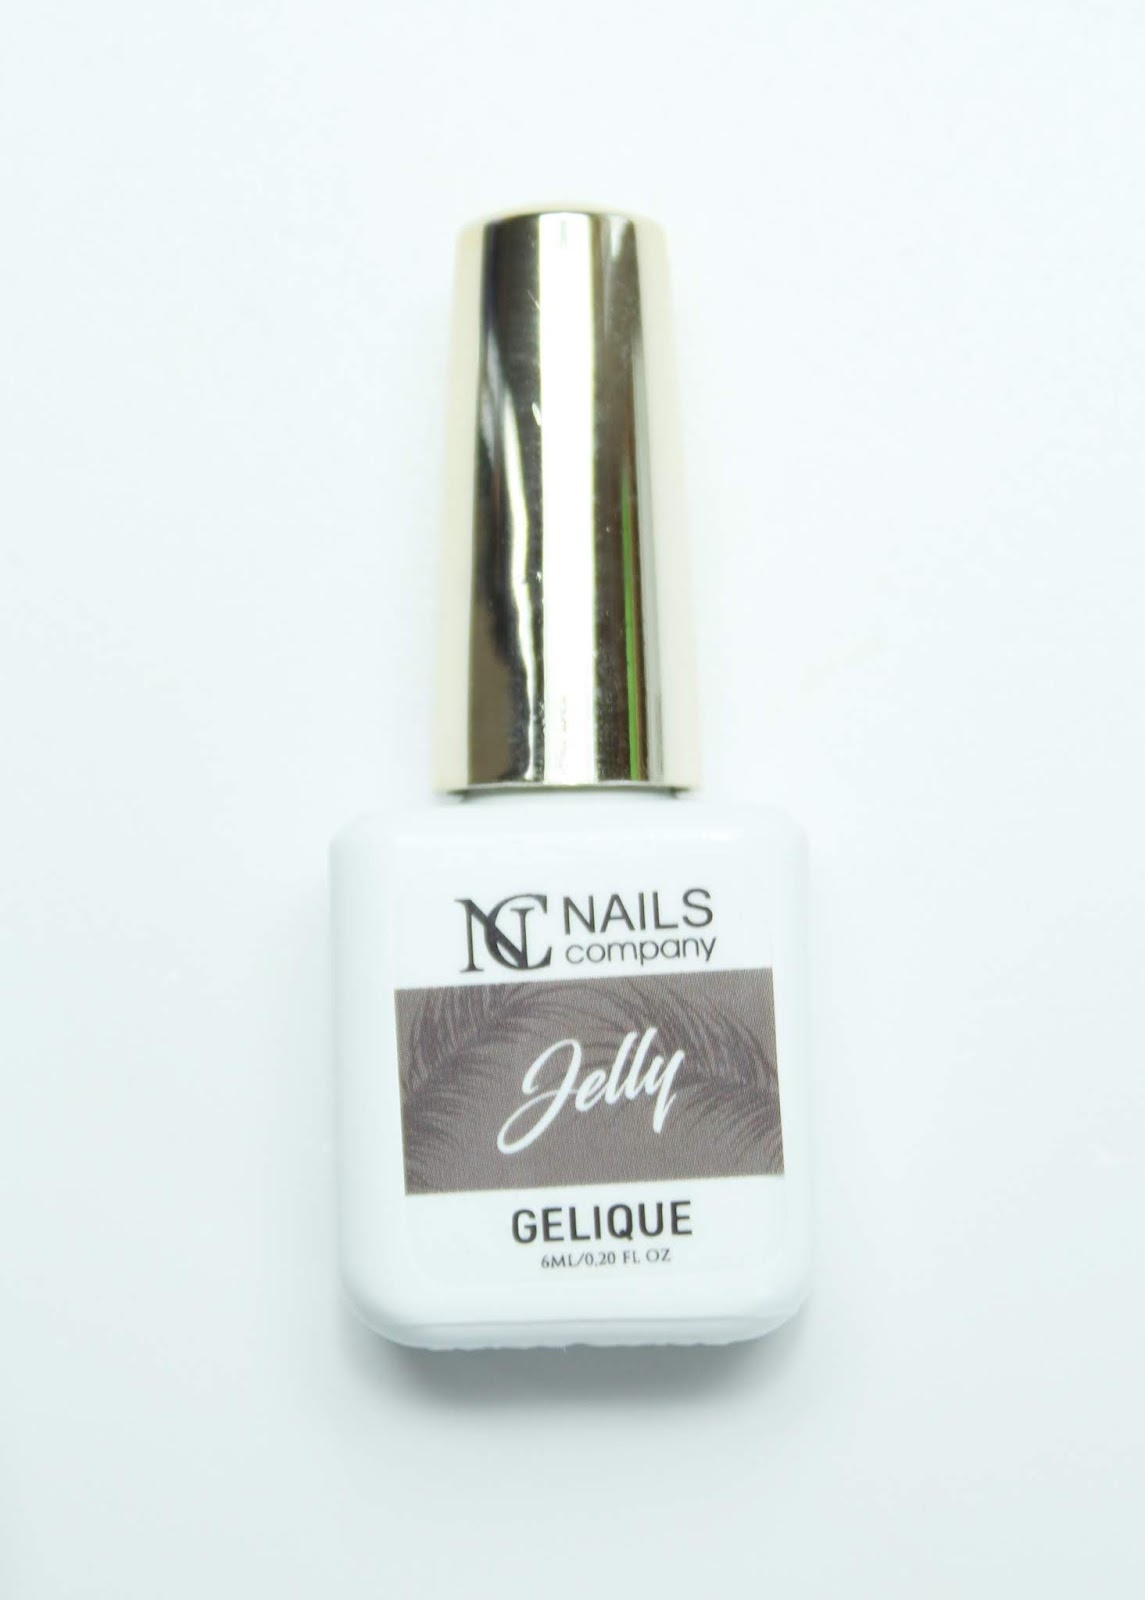 NC Nails Company Jelly